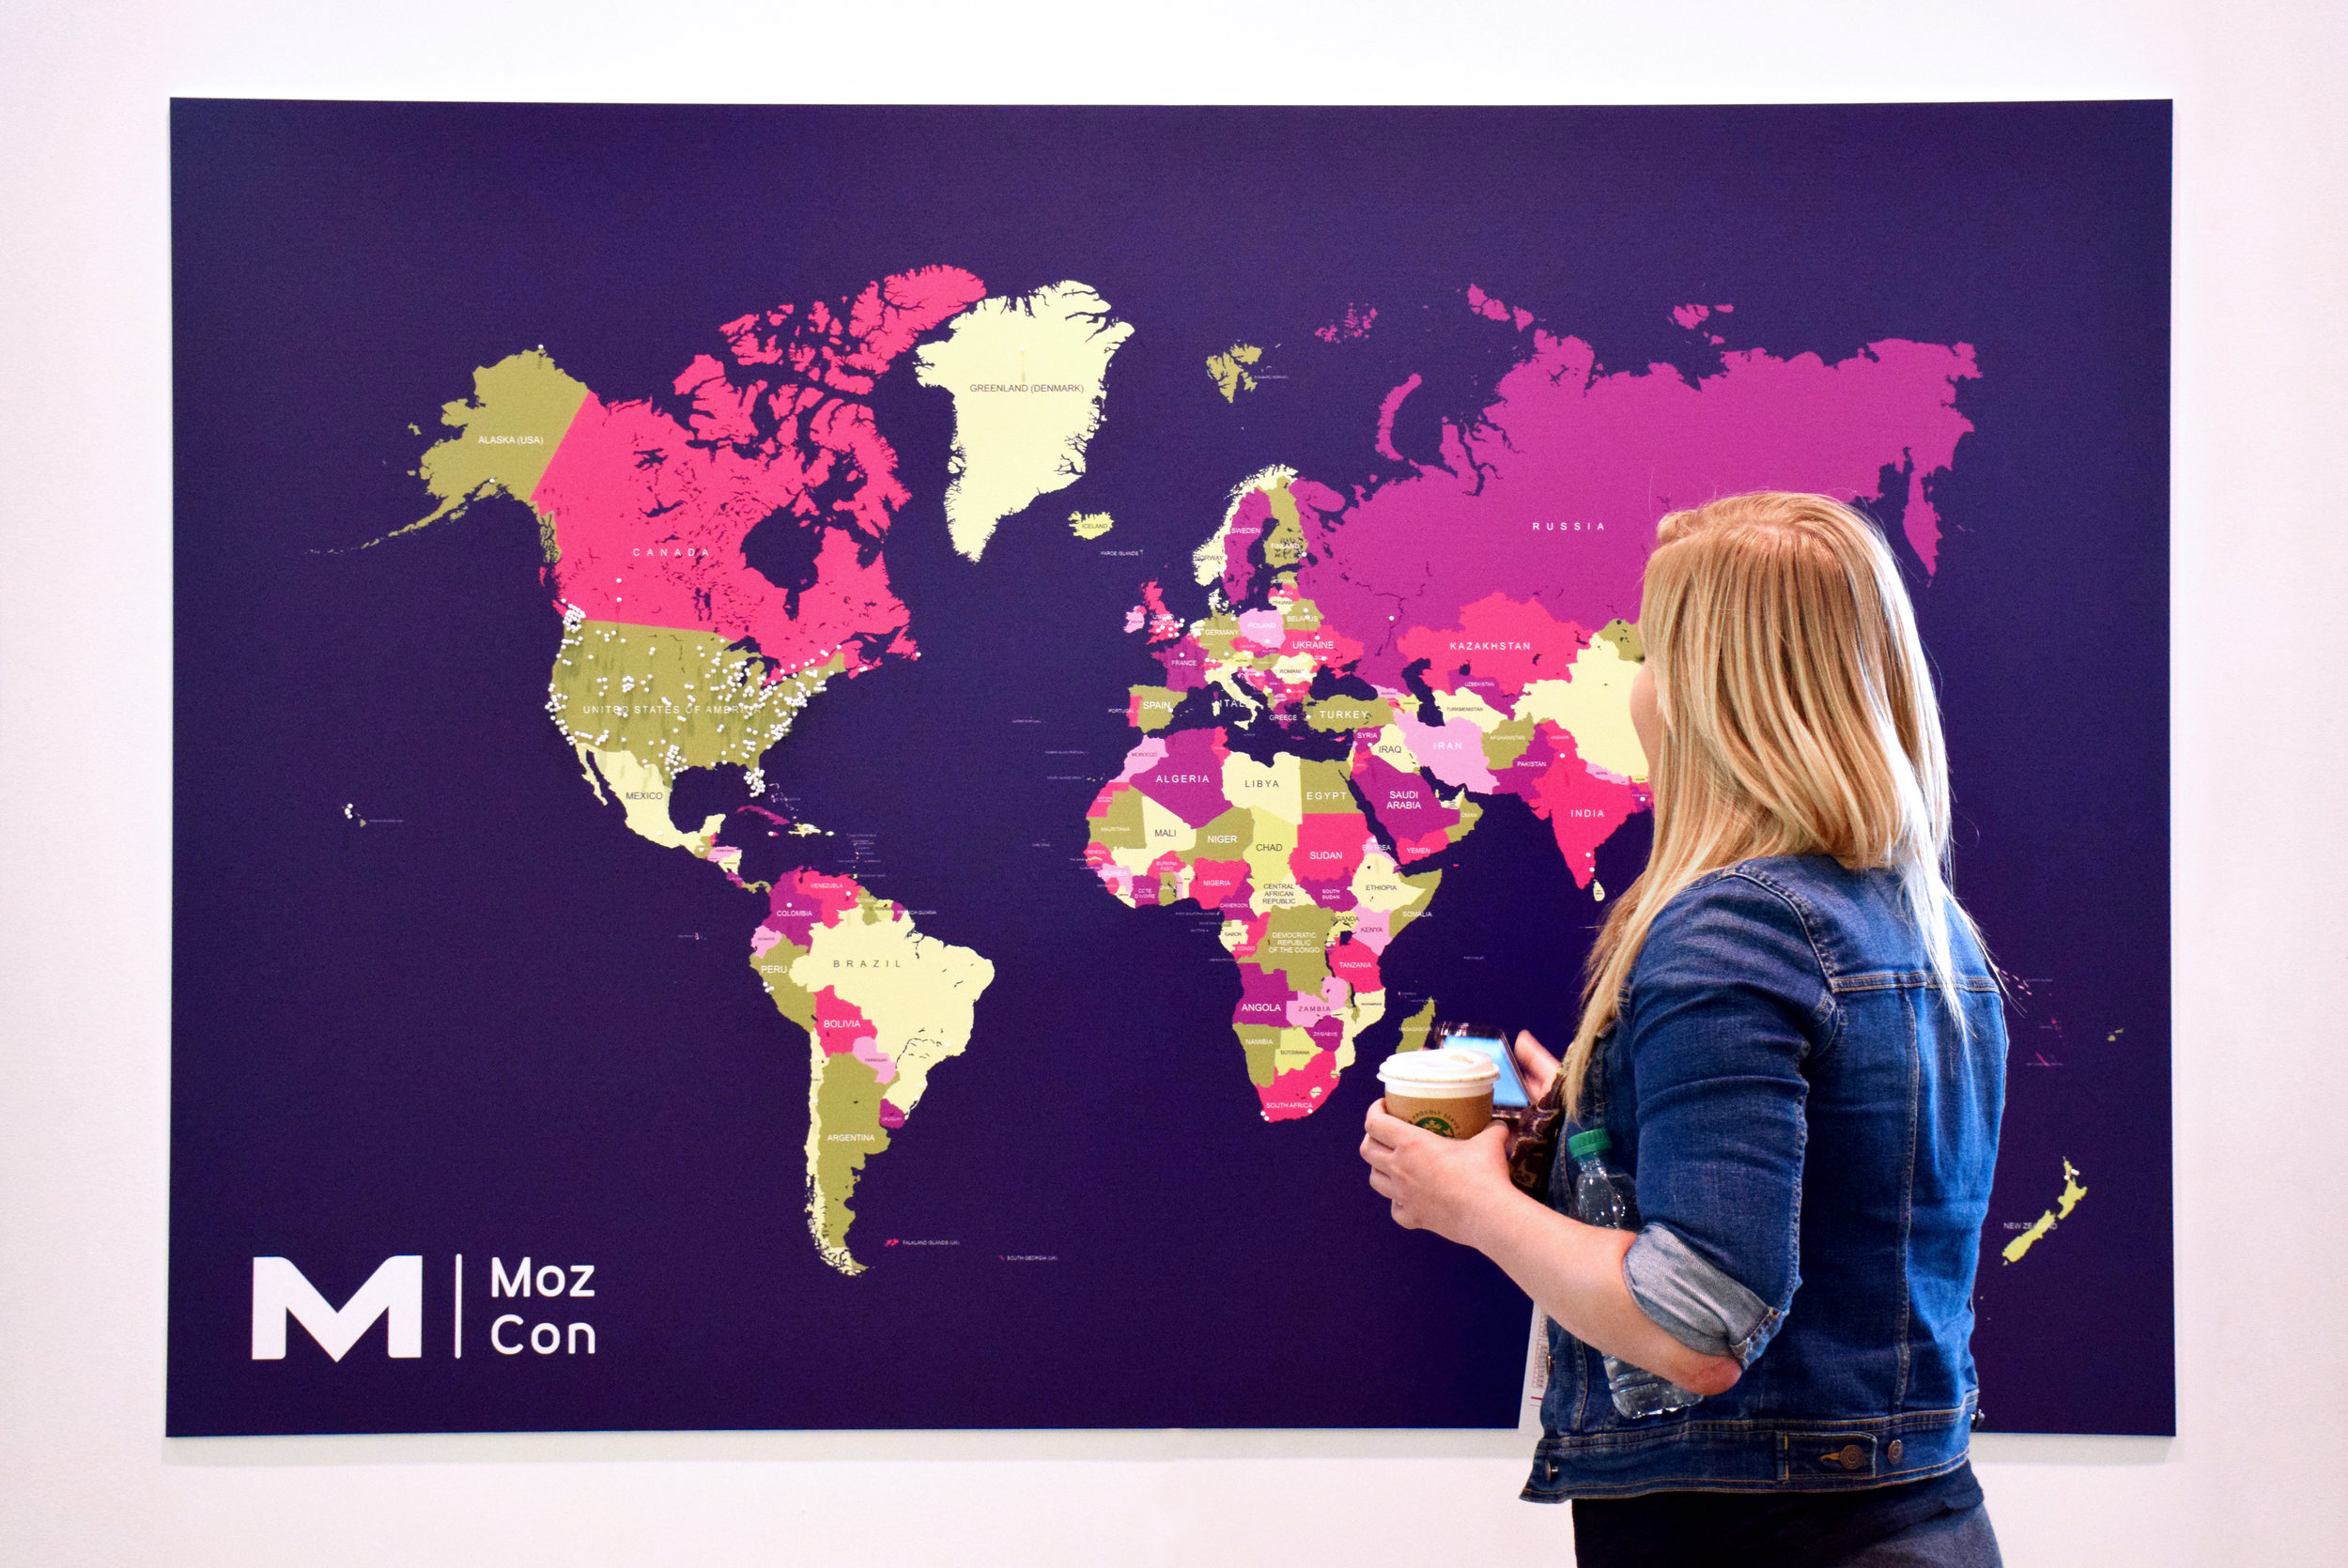 Interactive wall map where conference attendees had the opportunity to mark their place of origin with pushpins.